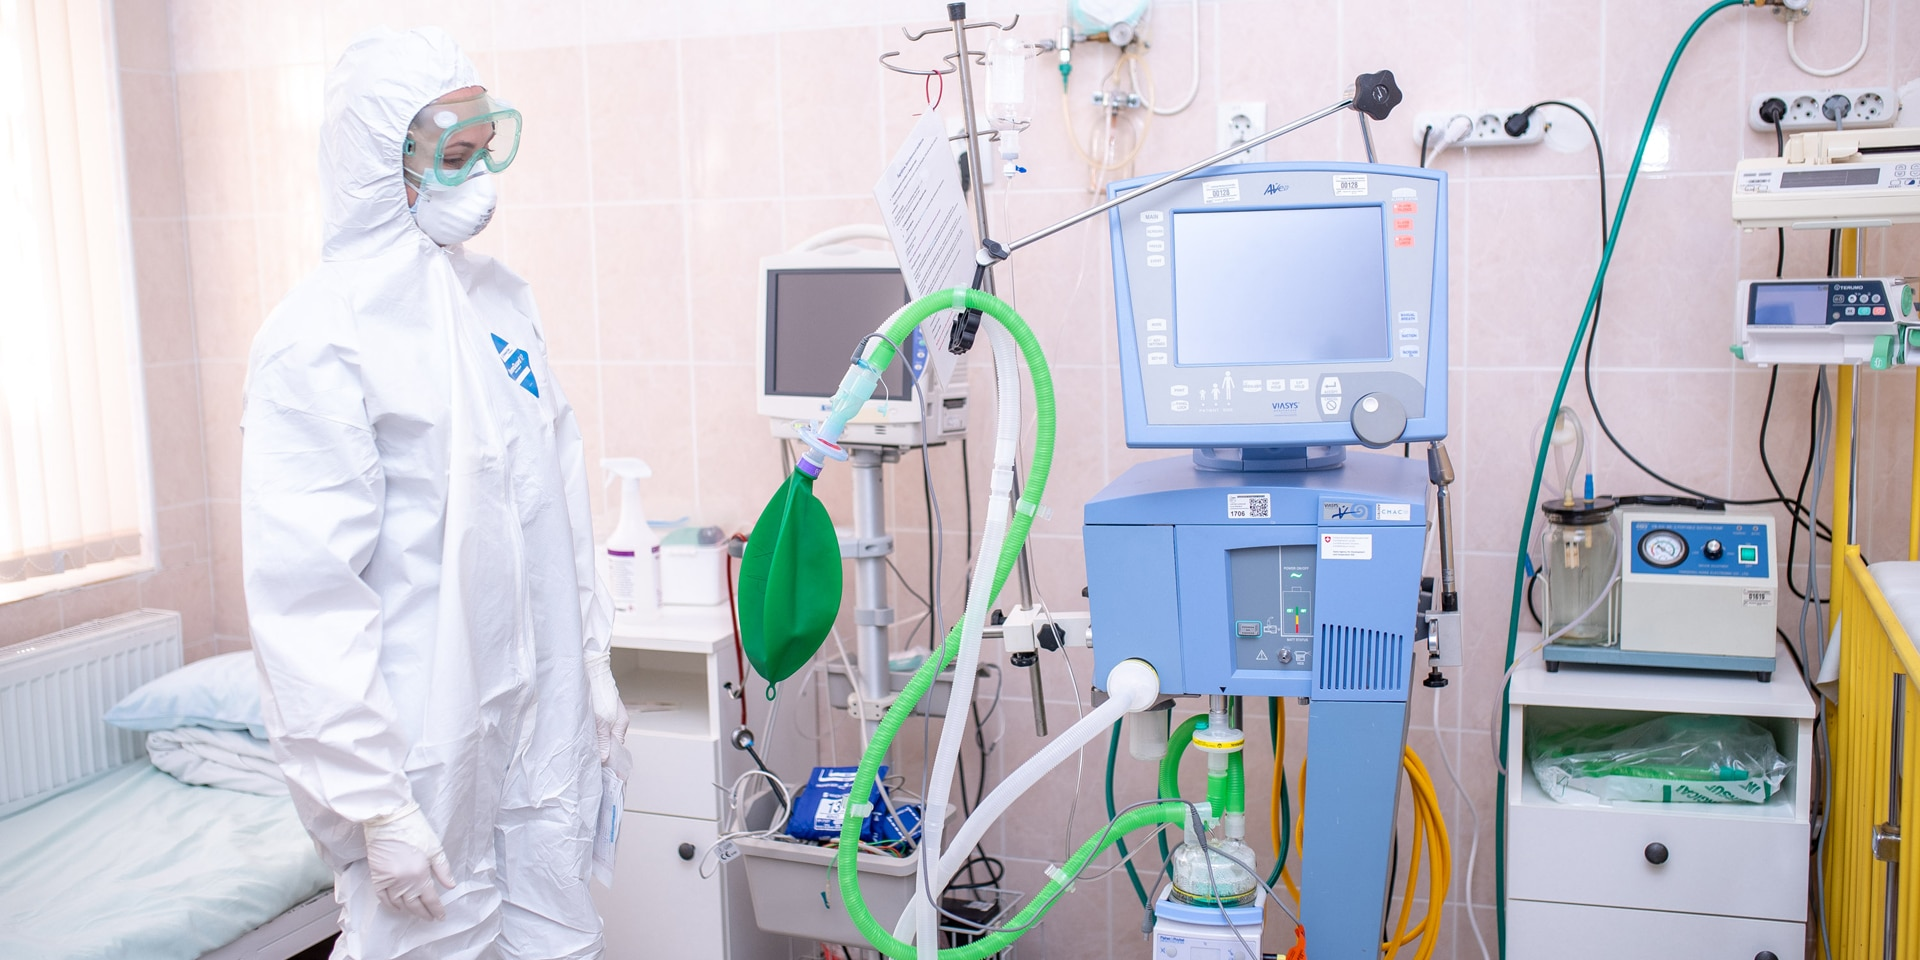 A nurse in protective clothing stands next to a ventilator used to treat acute COVID-19 cases.